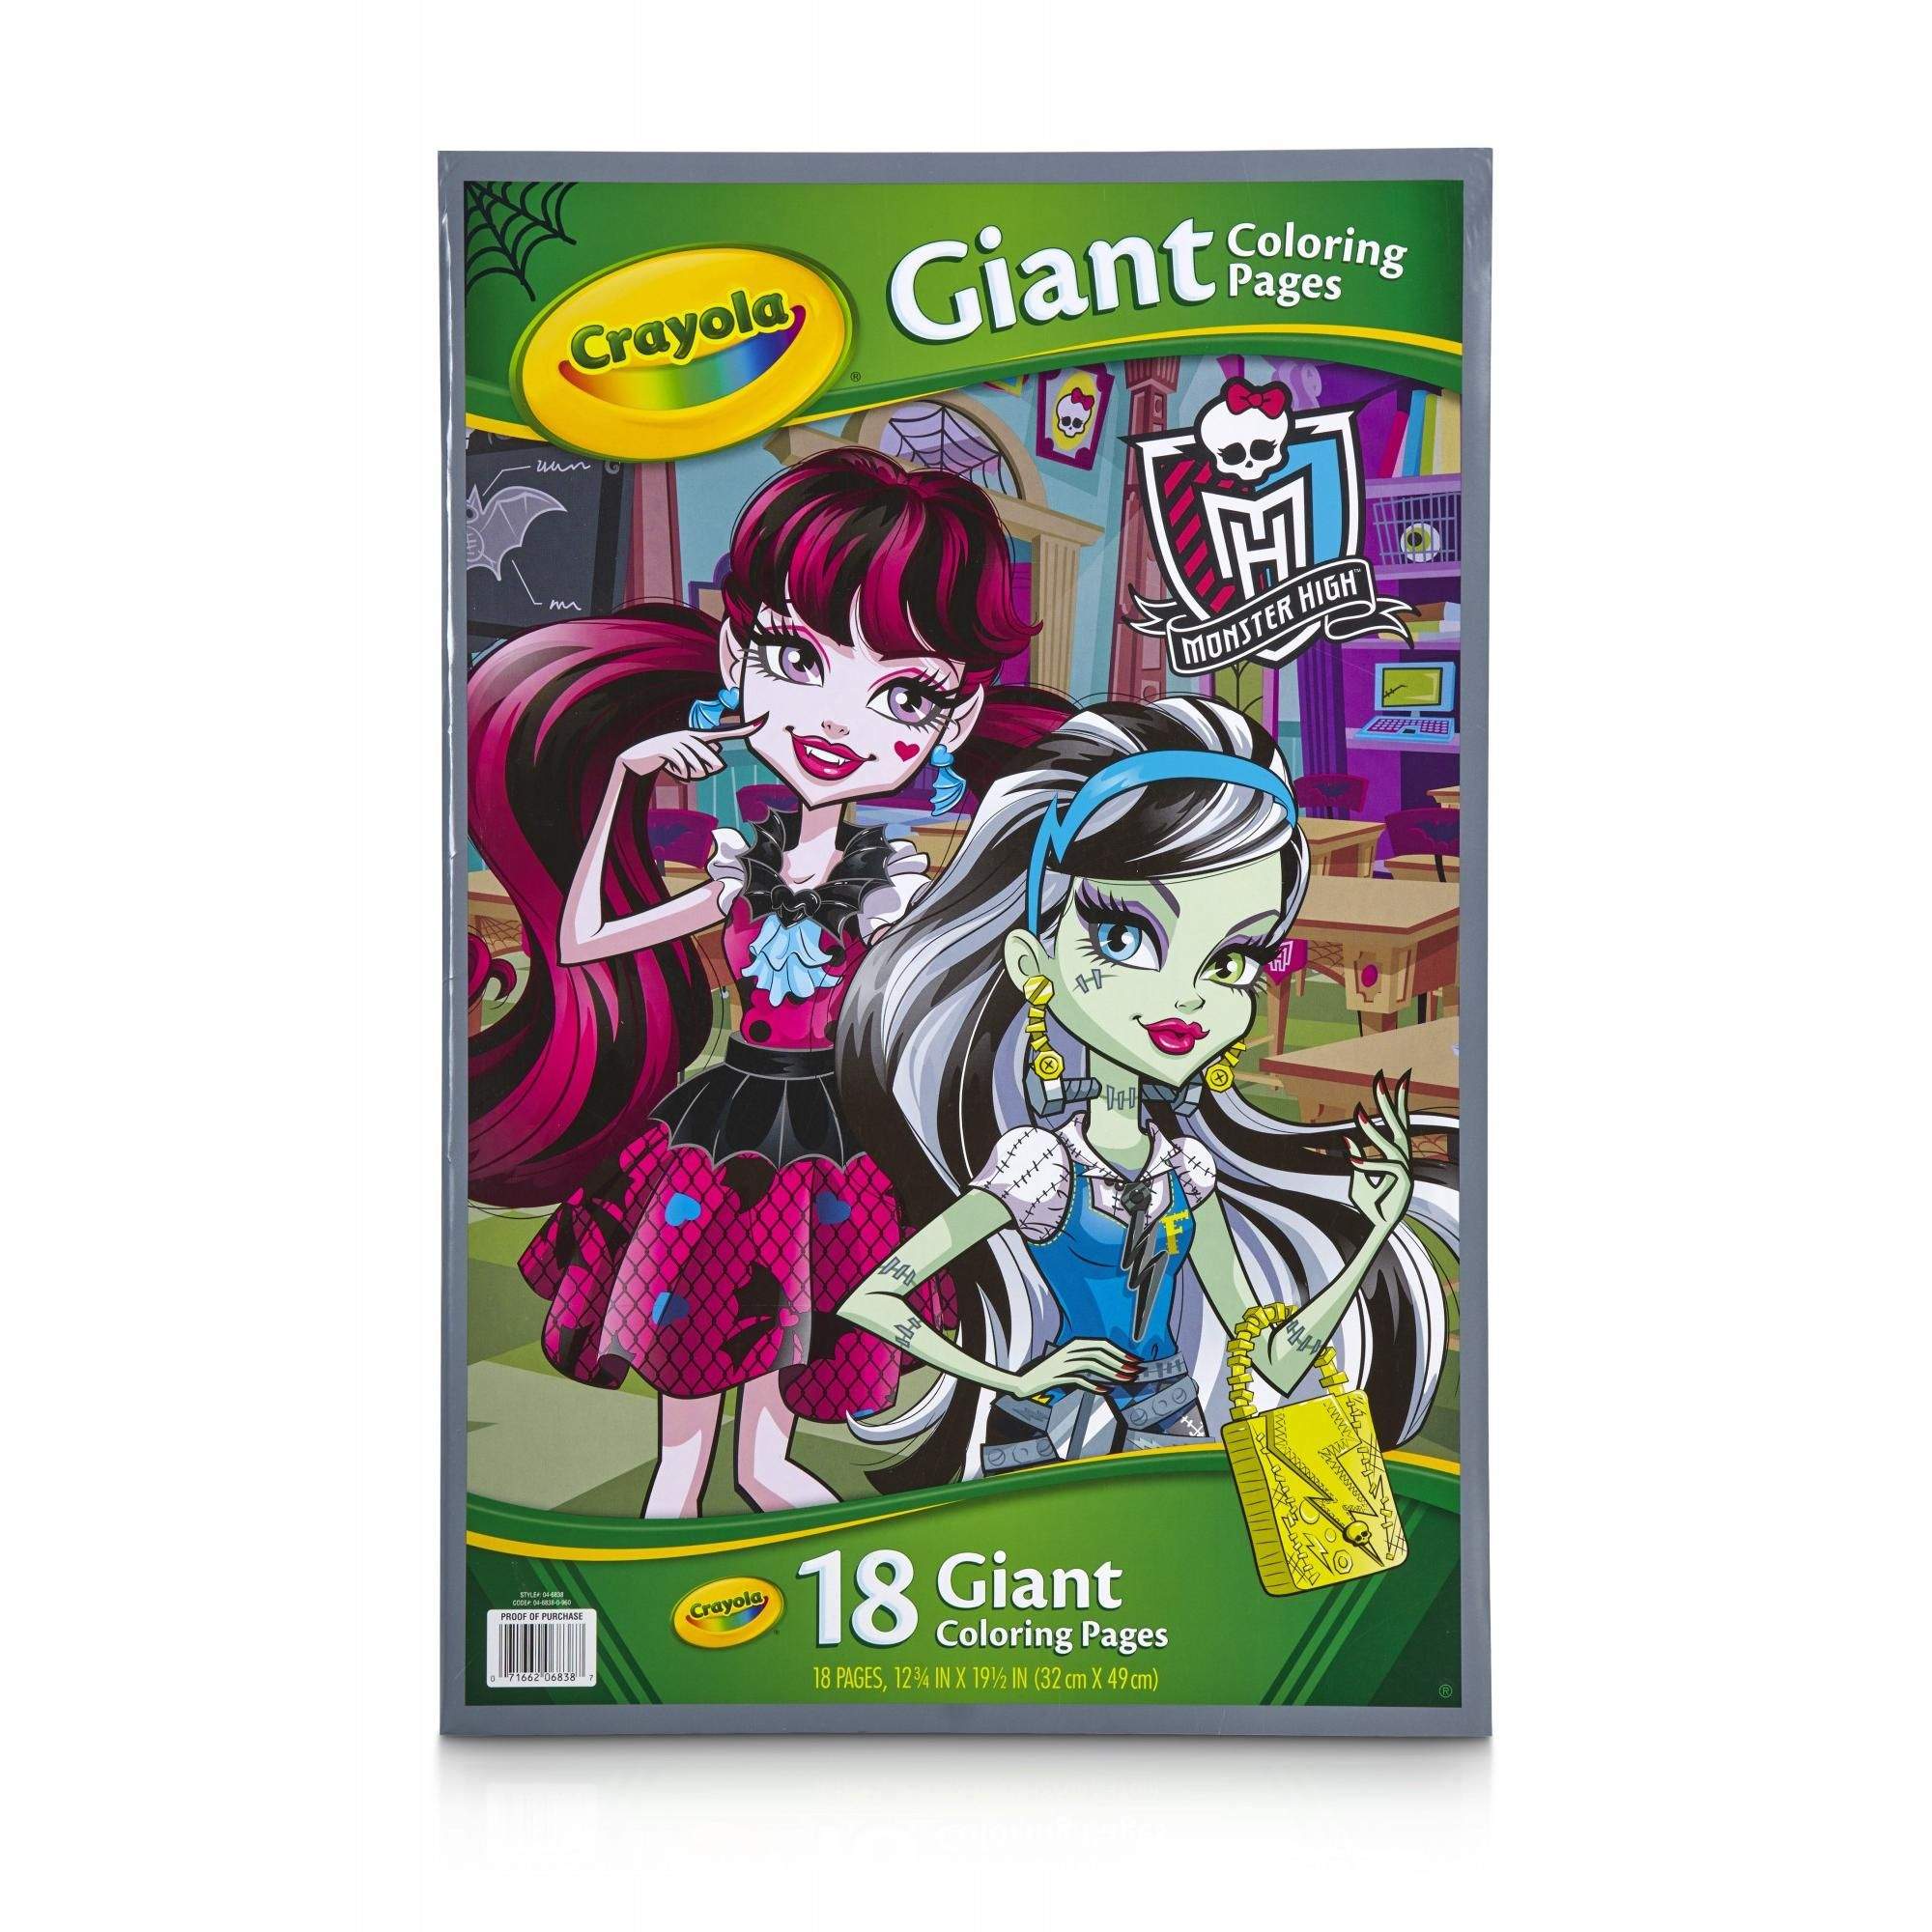 crayola giant coloring pages printables http//www